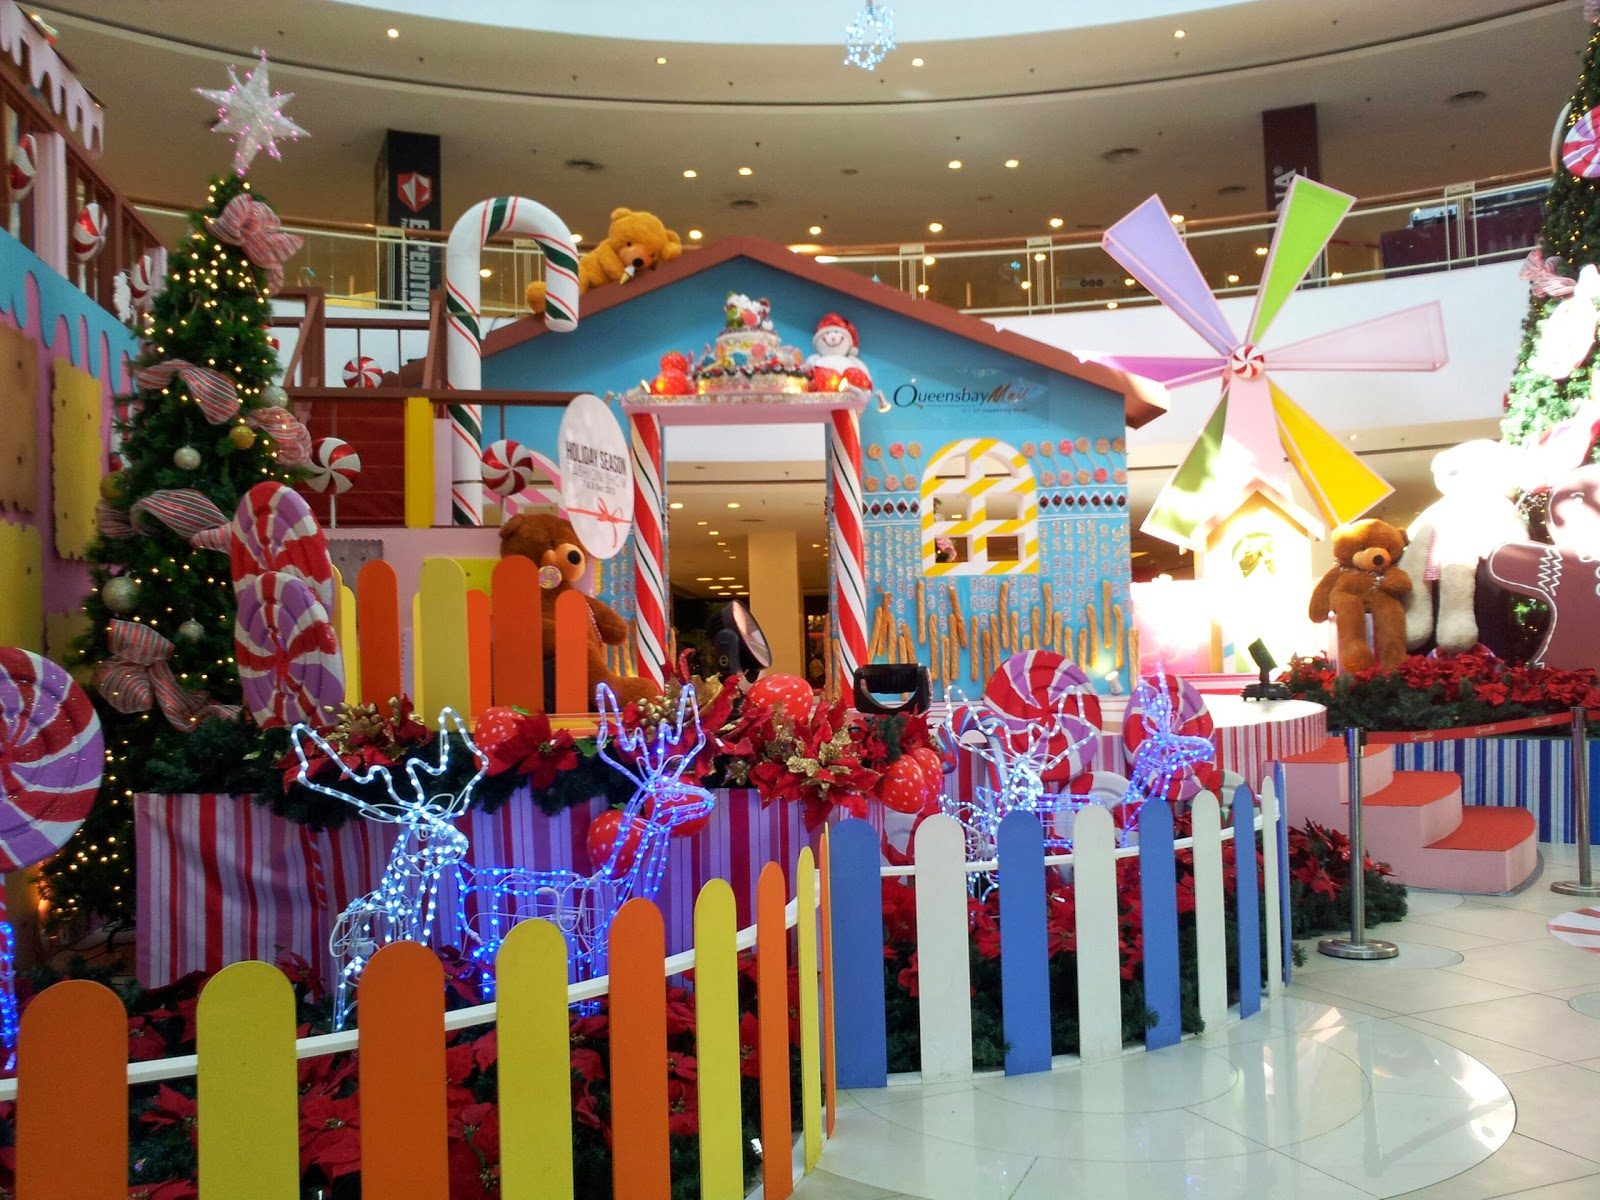 Best M4Sh3D Christmas Decorations At Queensbay Mall Penang This Month